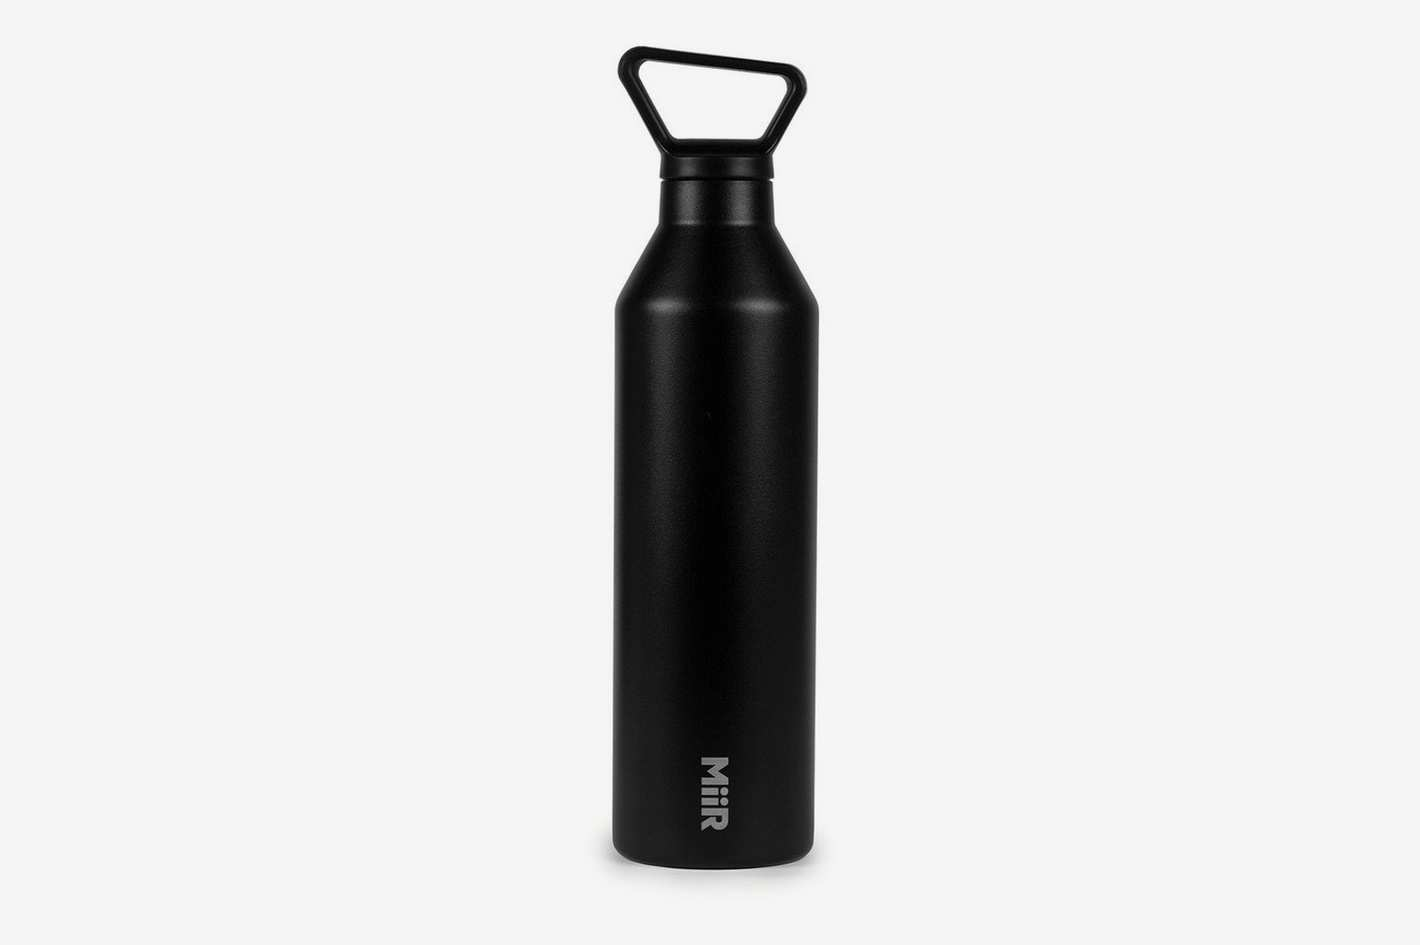 MiiR Insulated Narrow Mouth Bottle